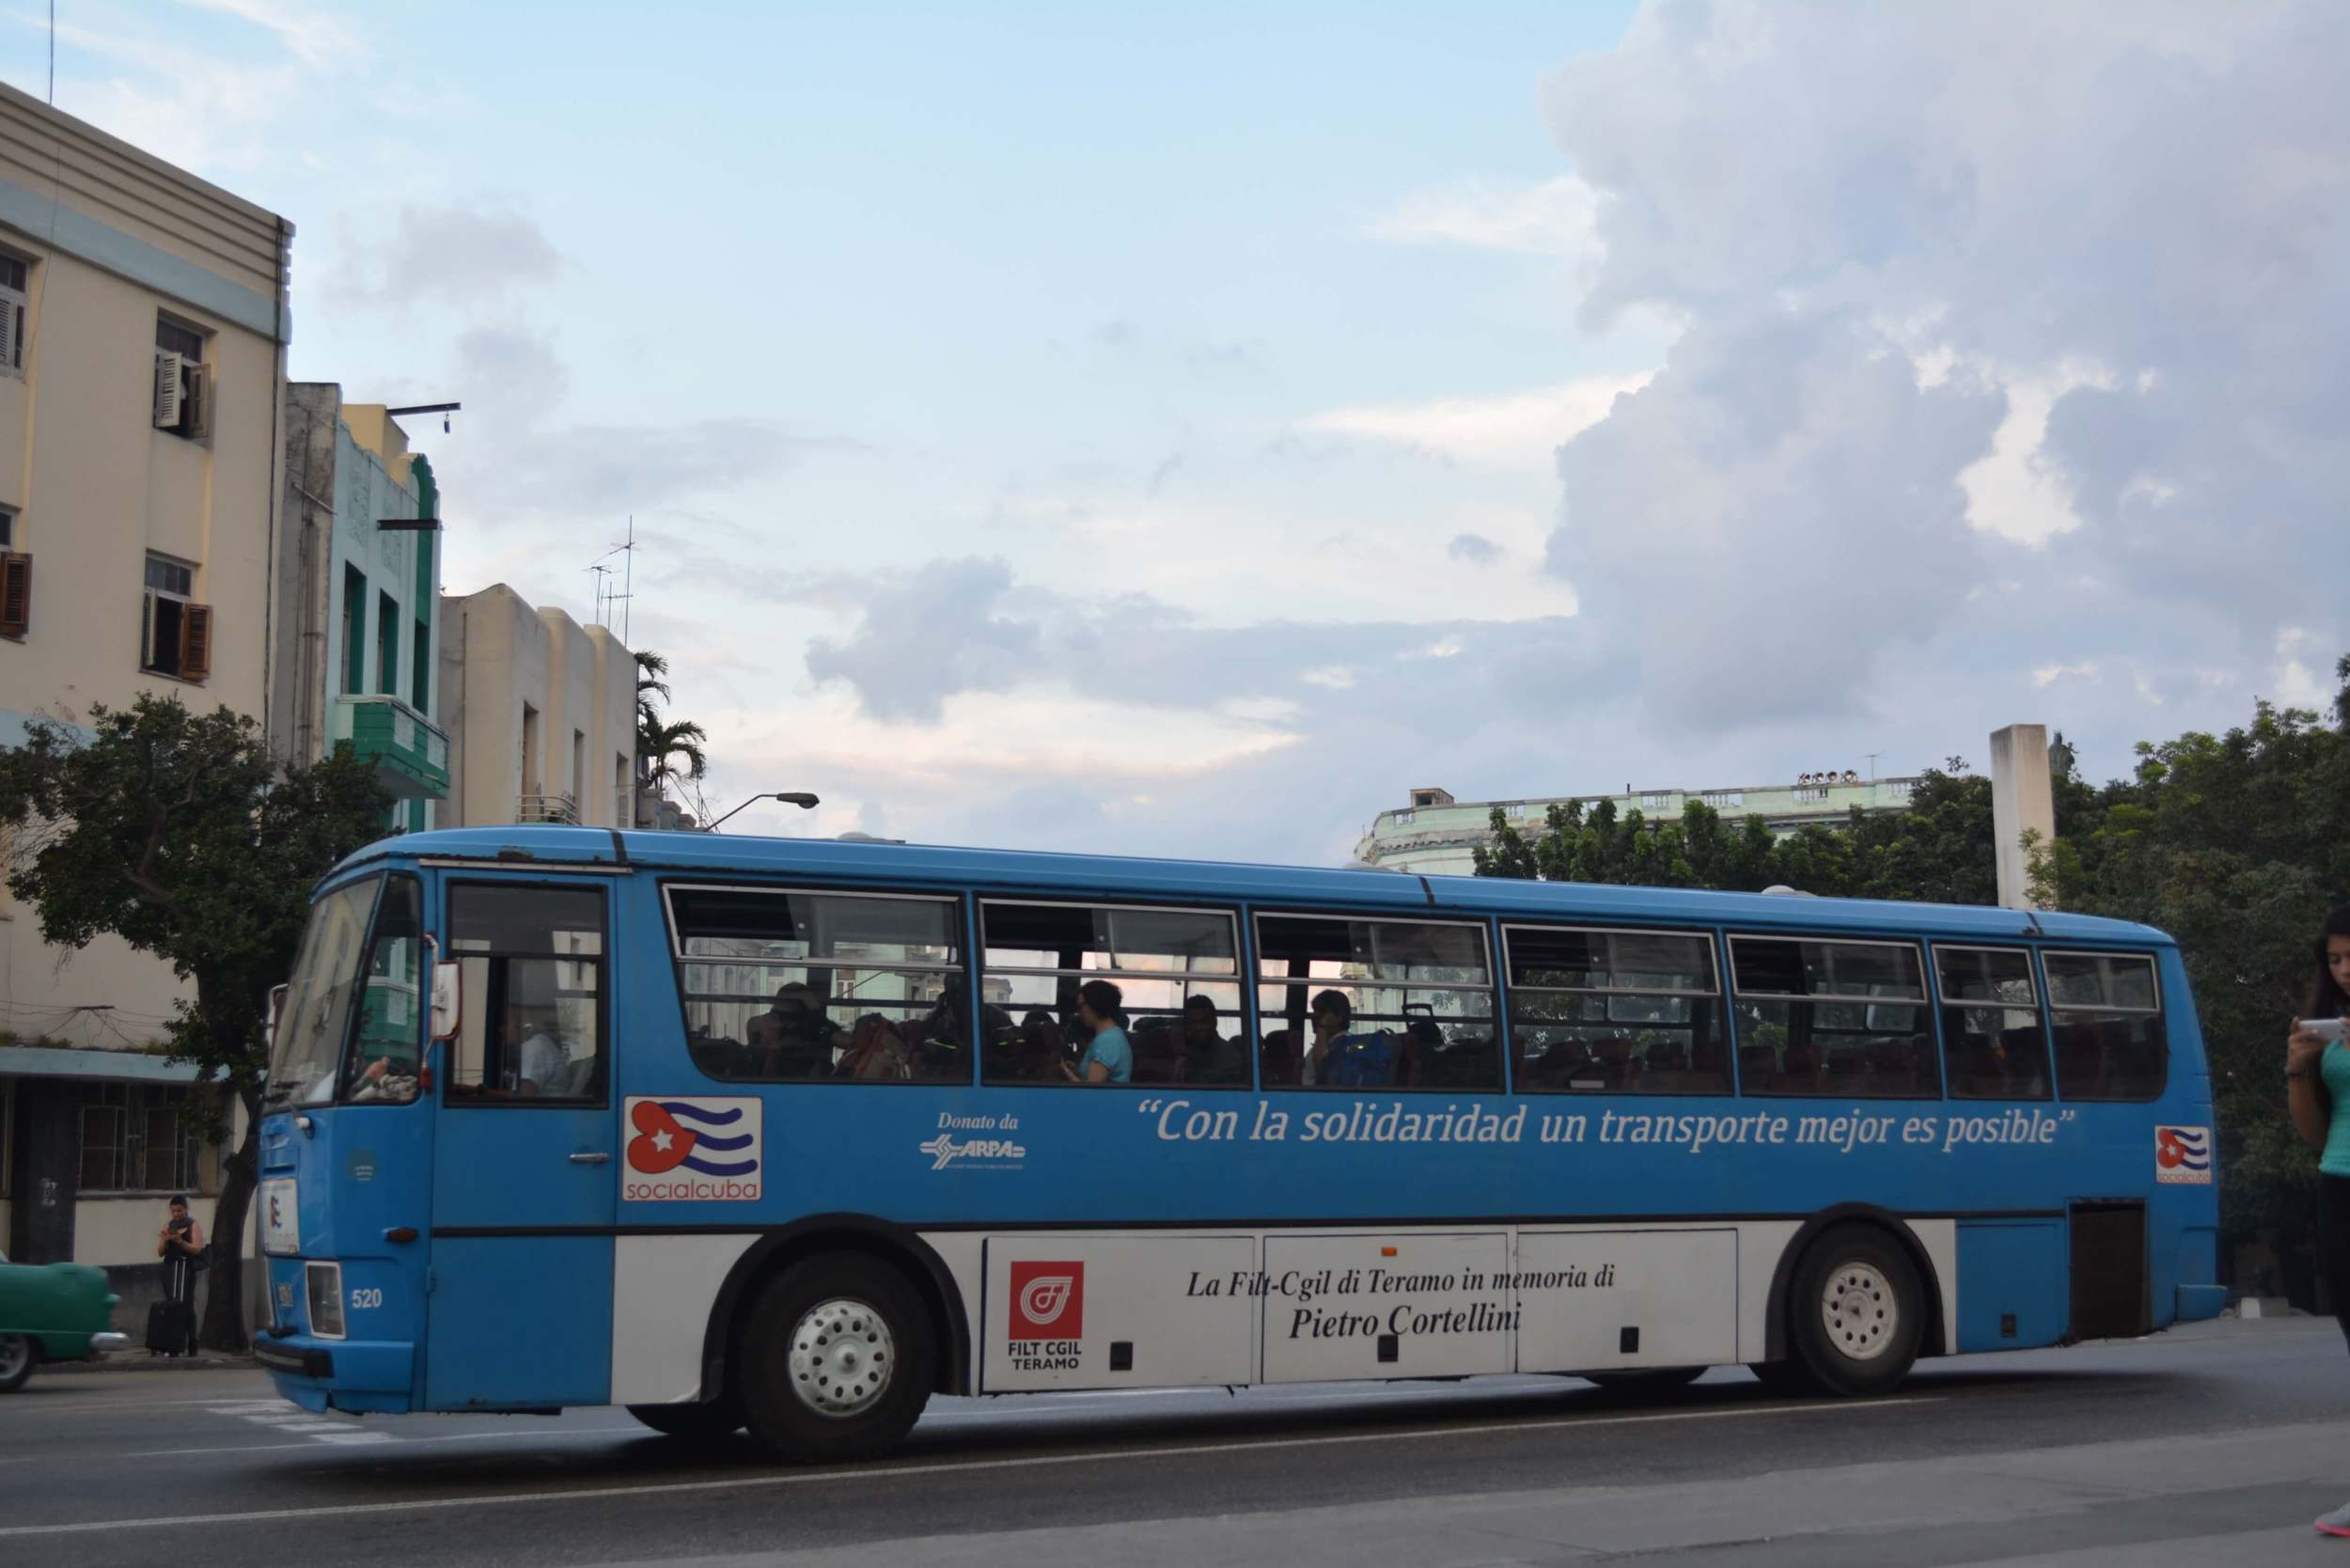 """Socialism lives on in Cuba - this new bus advertises """"With solidarity, better transport is possible"""""""